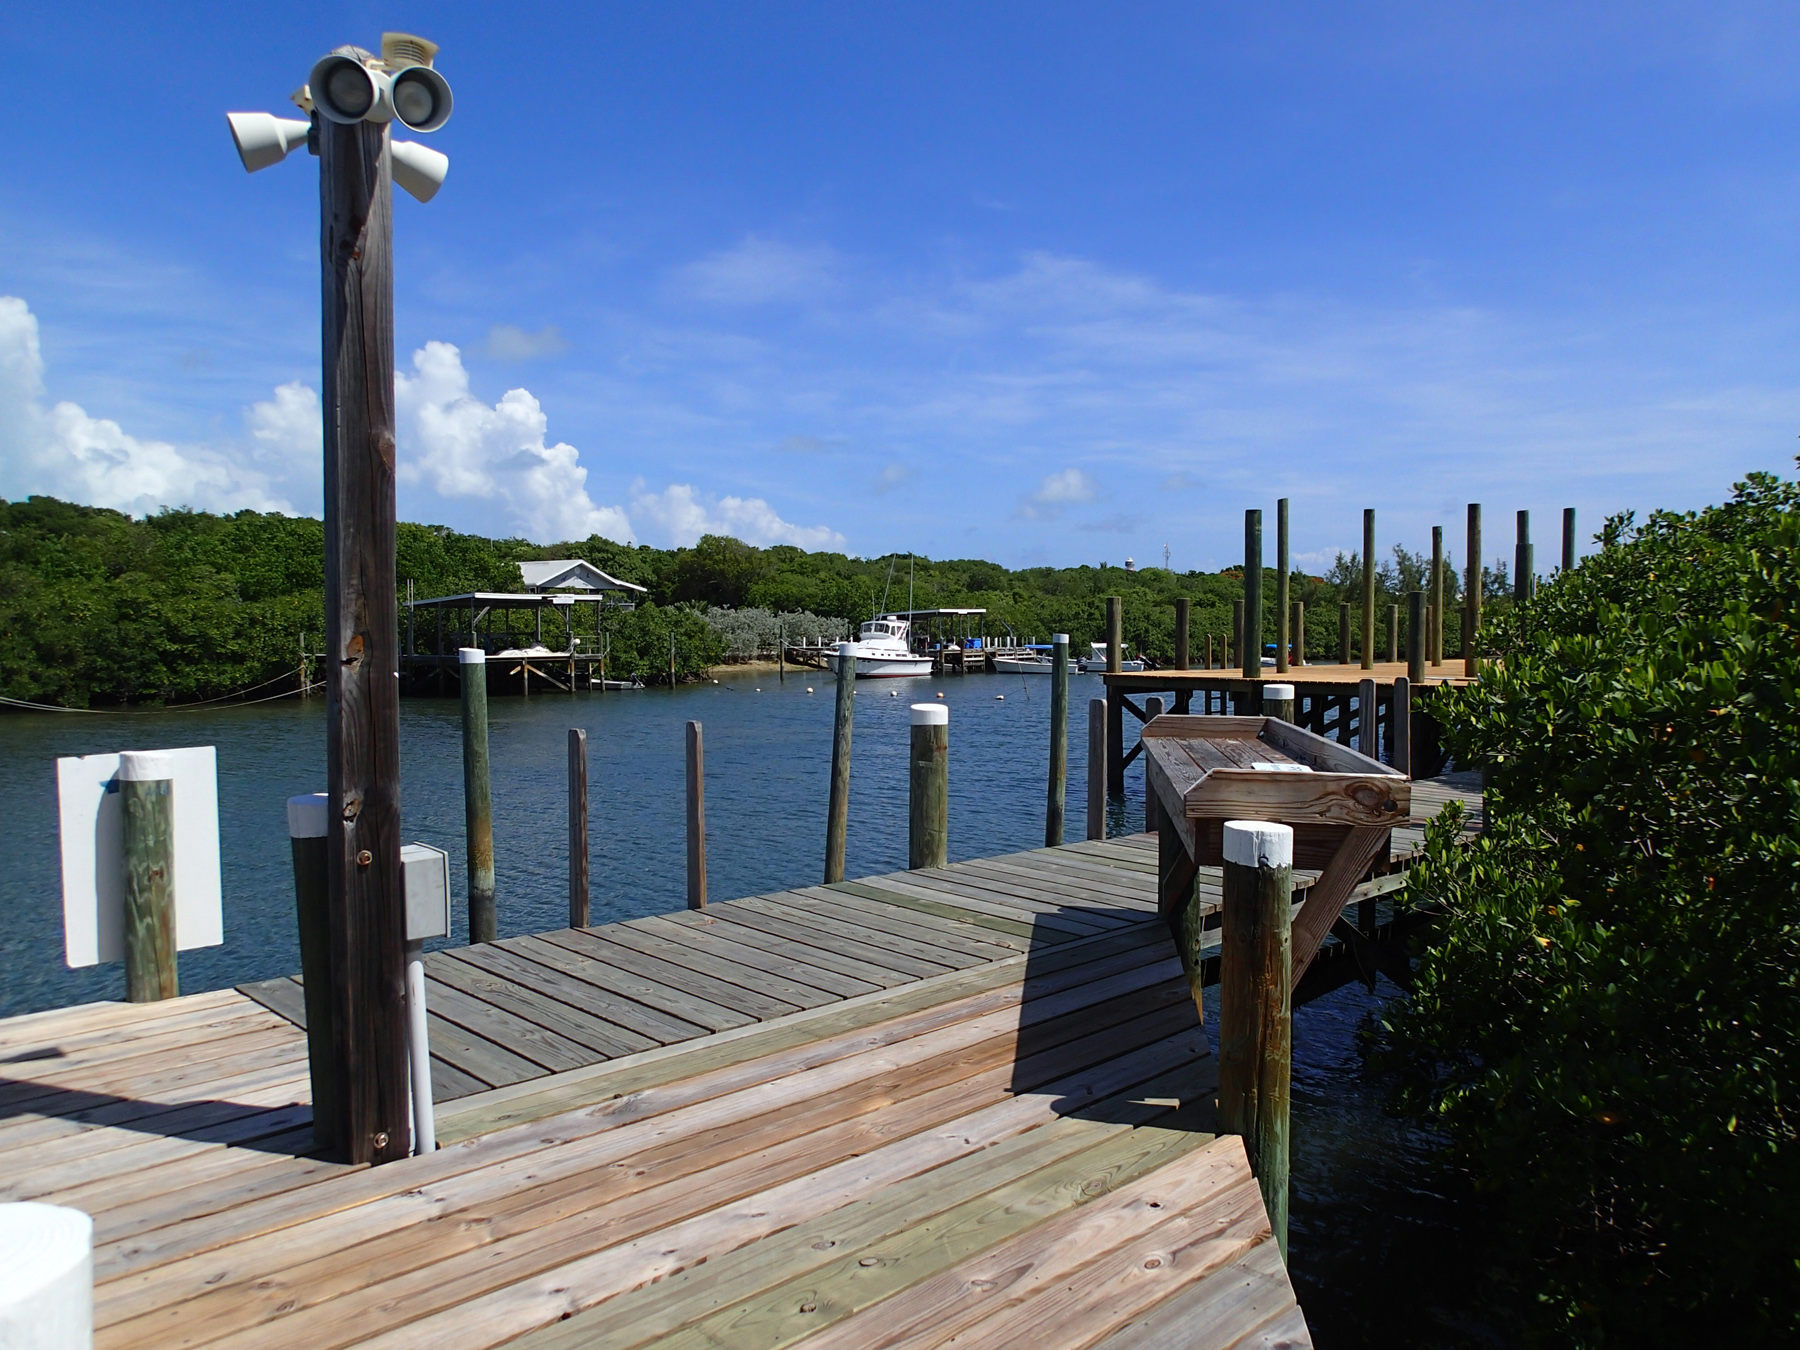 Additional photo for property listing at Nigh Creek Dock Slips H, I & J Elbow Cay Hope Town, Abaco Bahamas